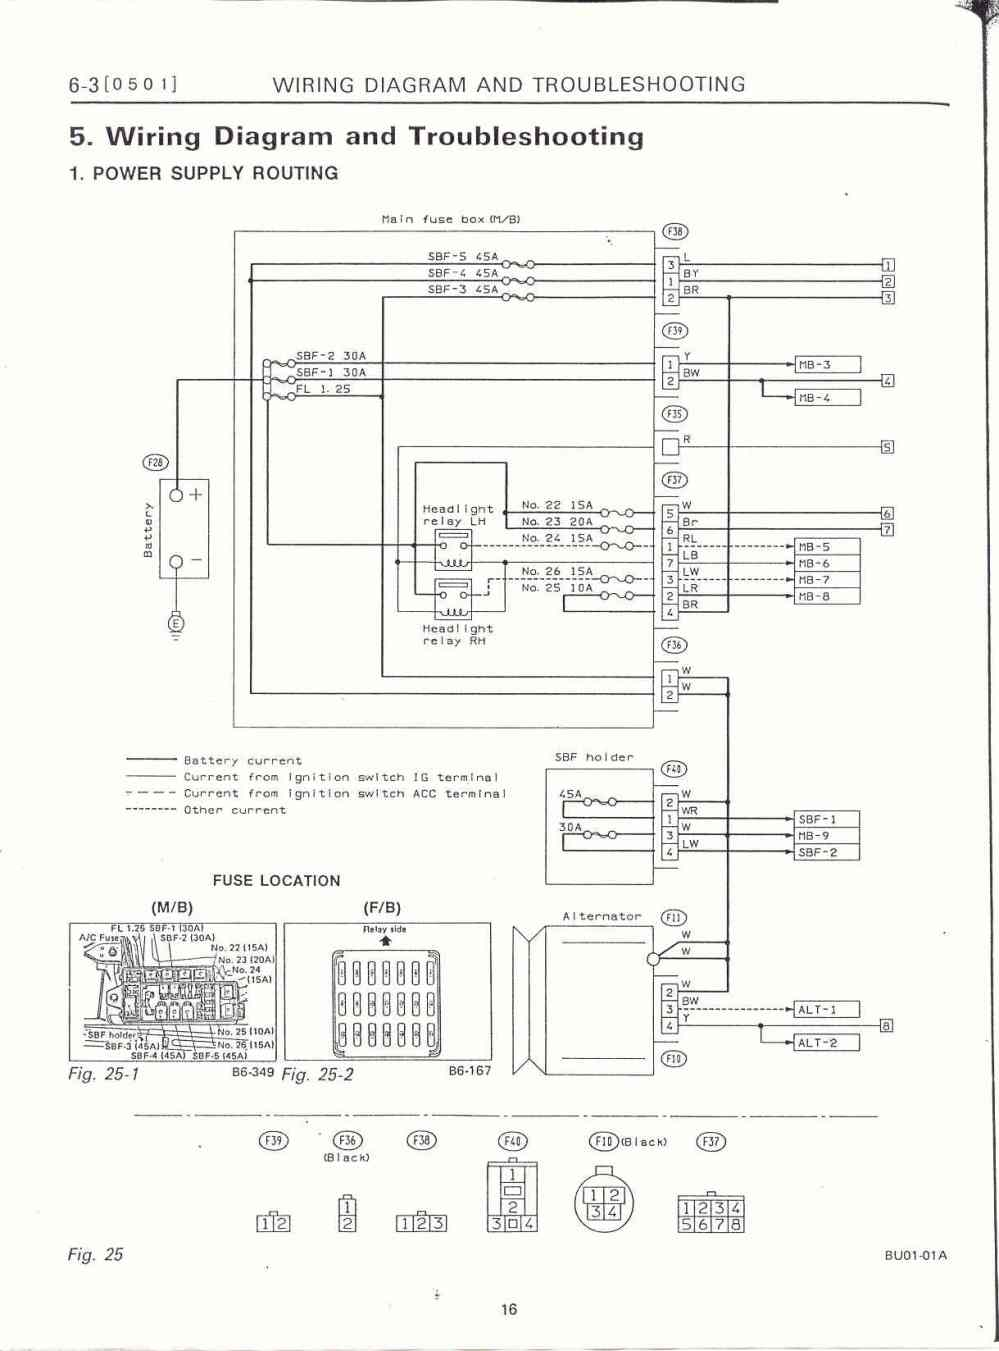 medium resolution of power supply routing page 1